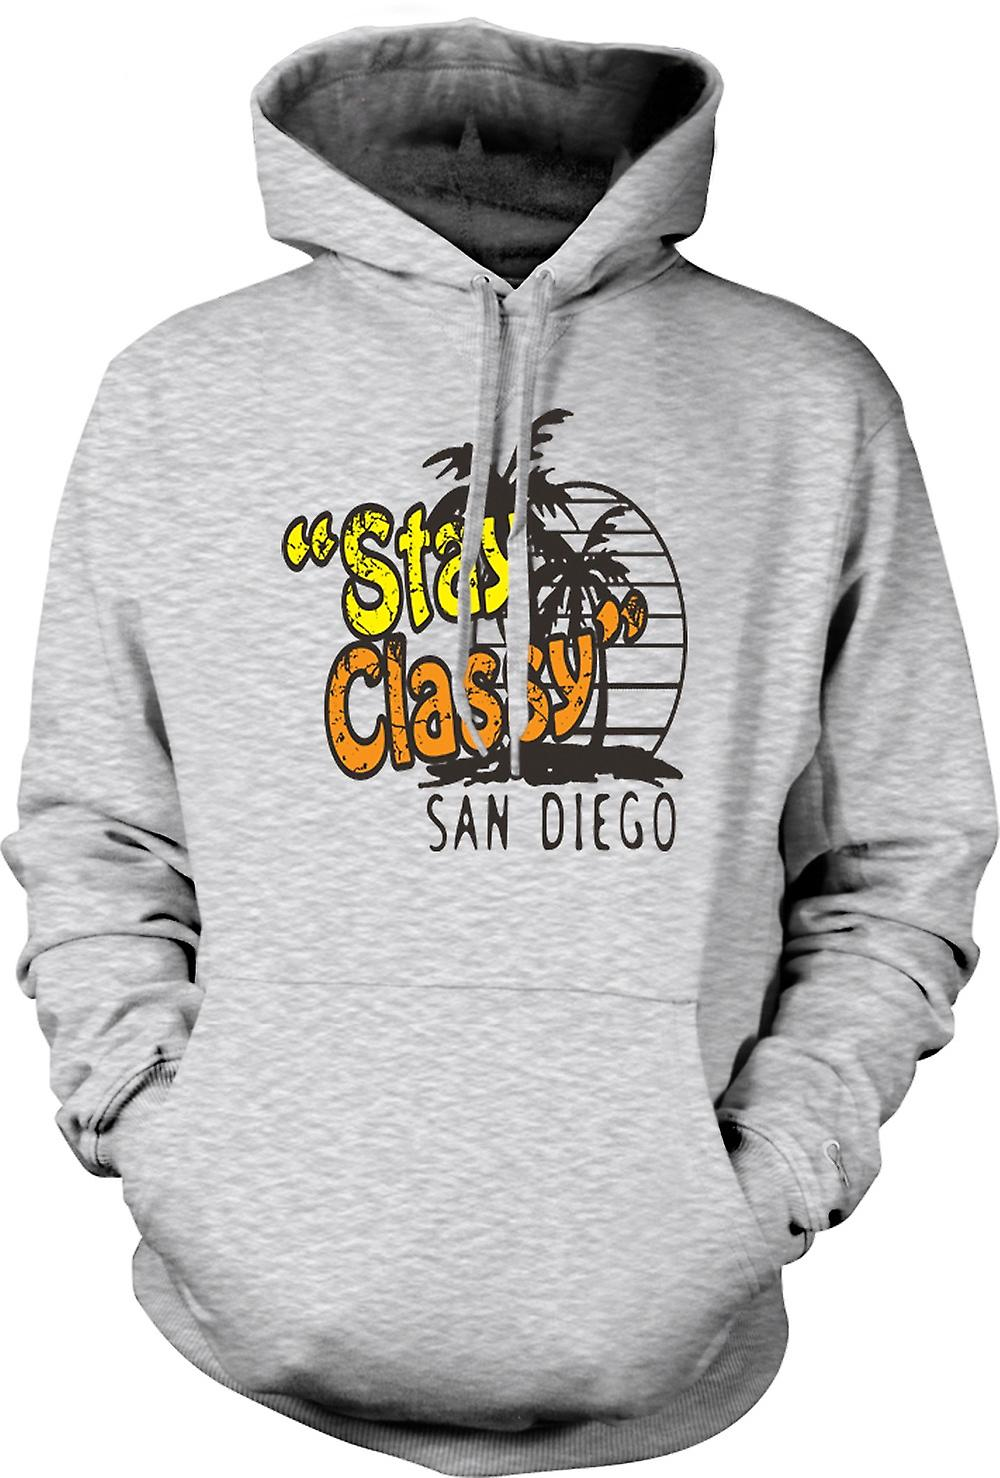 Mens Hoodie - Stay Classy San Diego - Funny